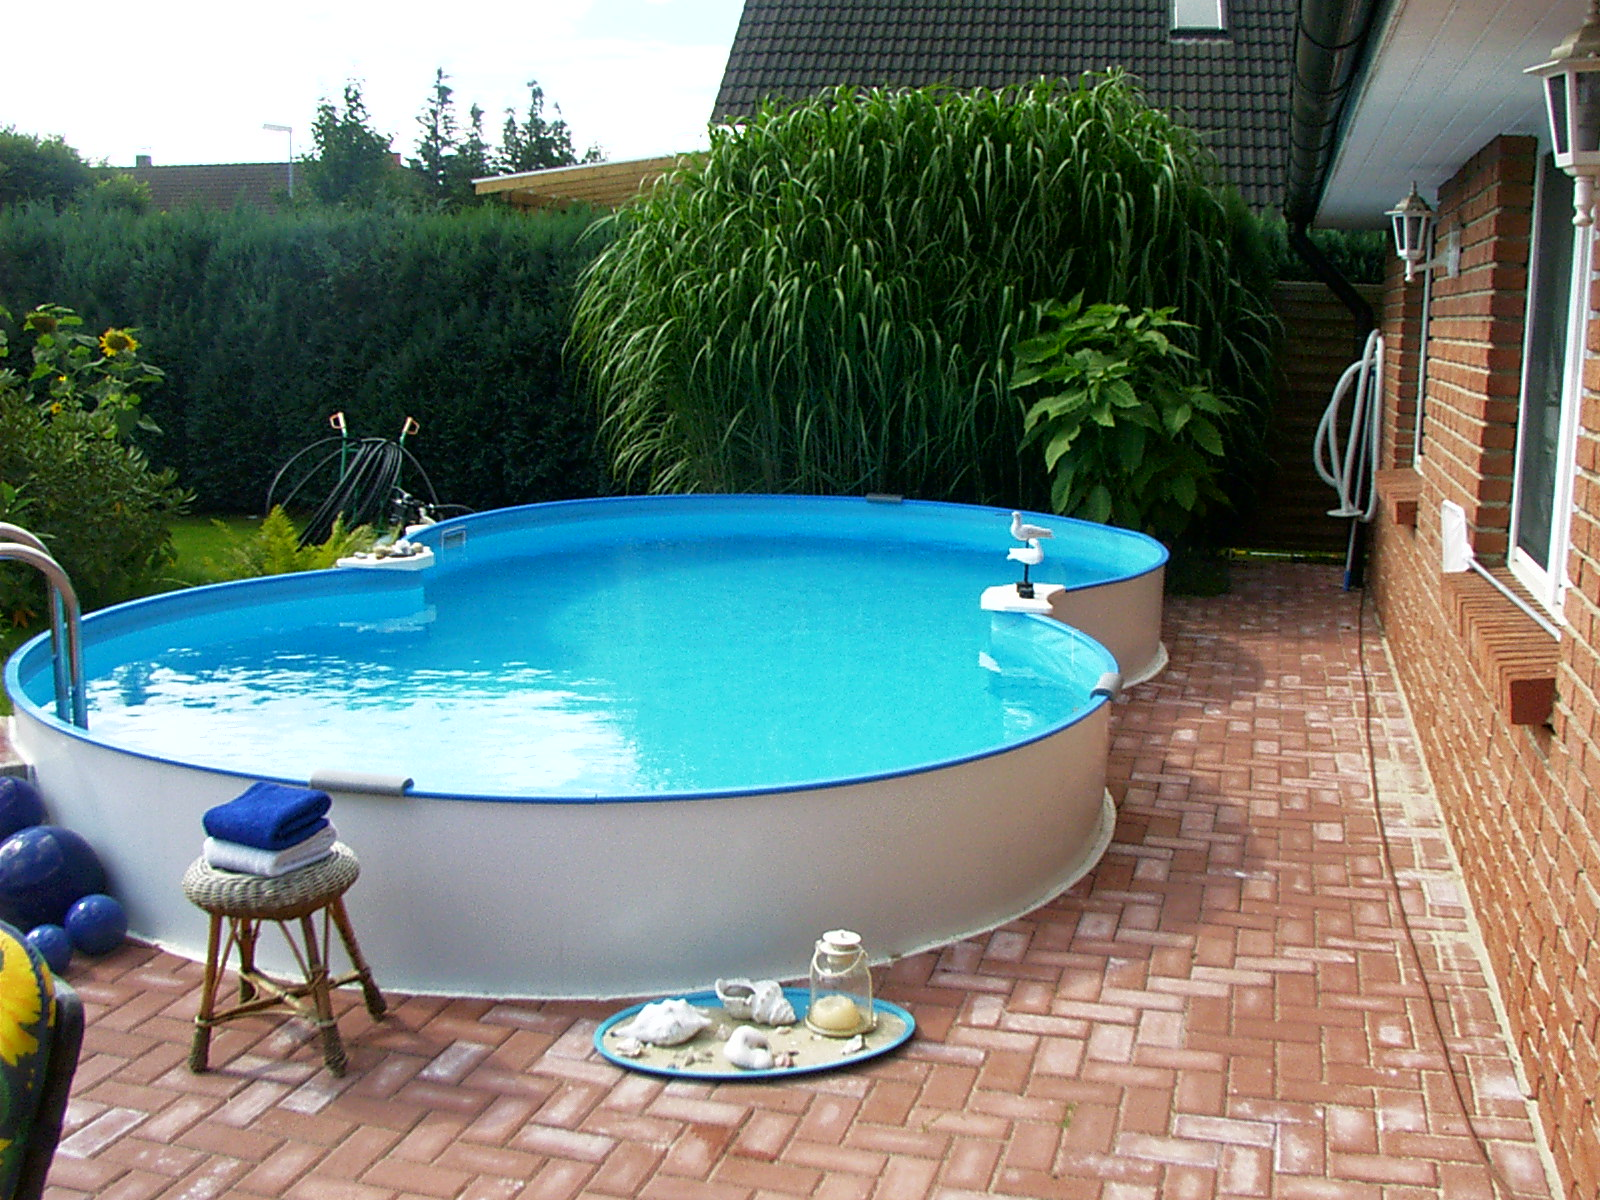 pool f r kleinen garten kleiner pool im garten new garten ideen pools f r den garten pool. Black Bedroom Furniture Sets. Home Design Ideas